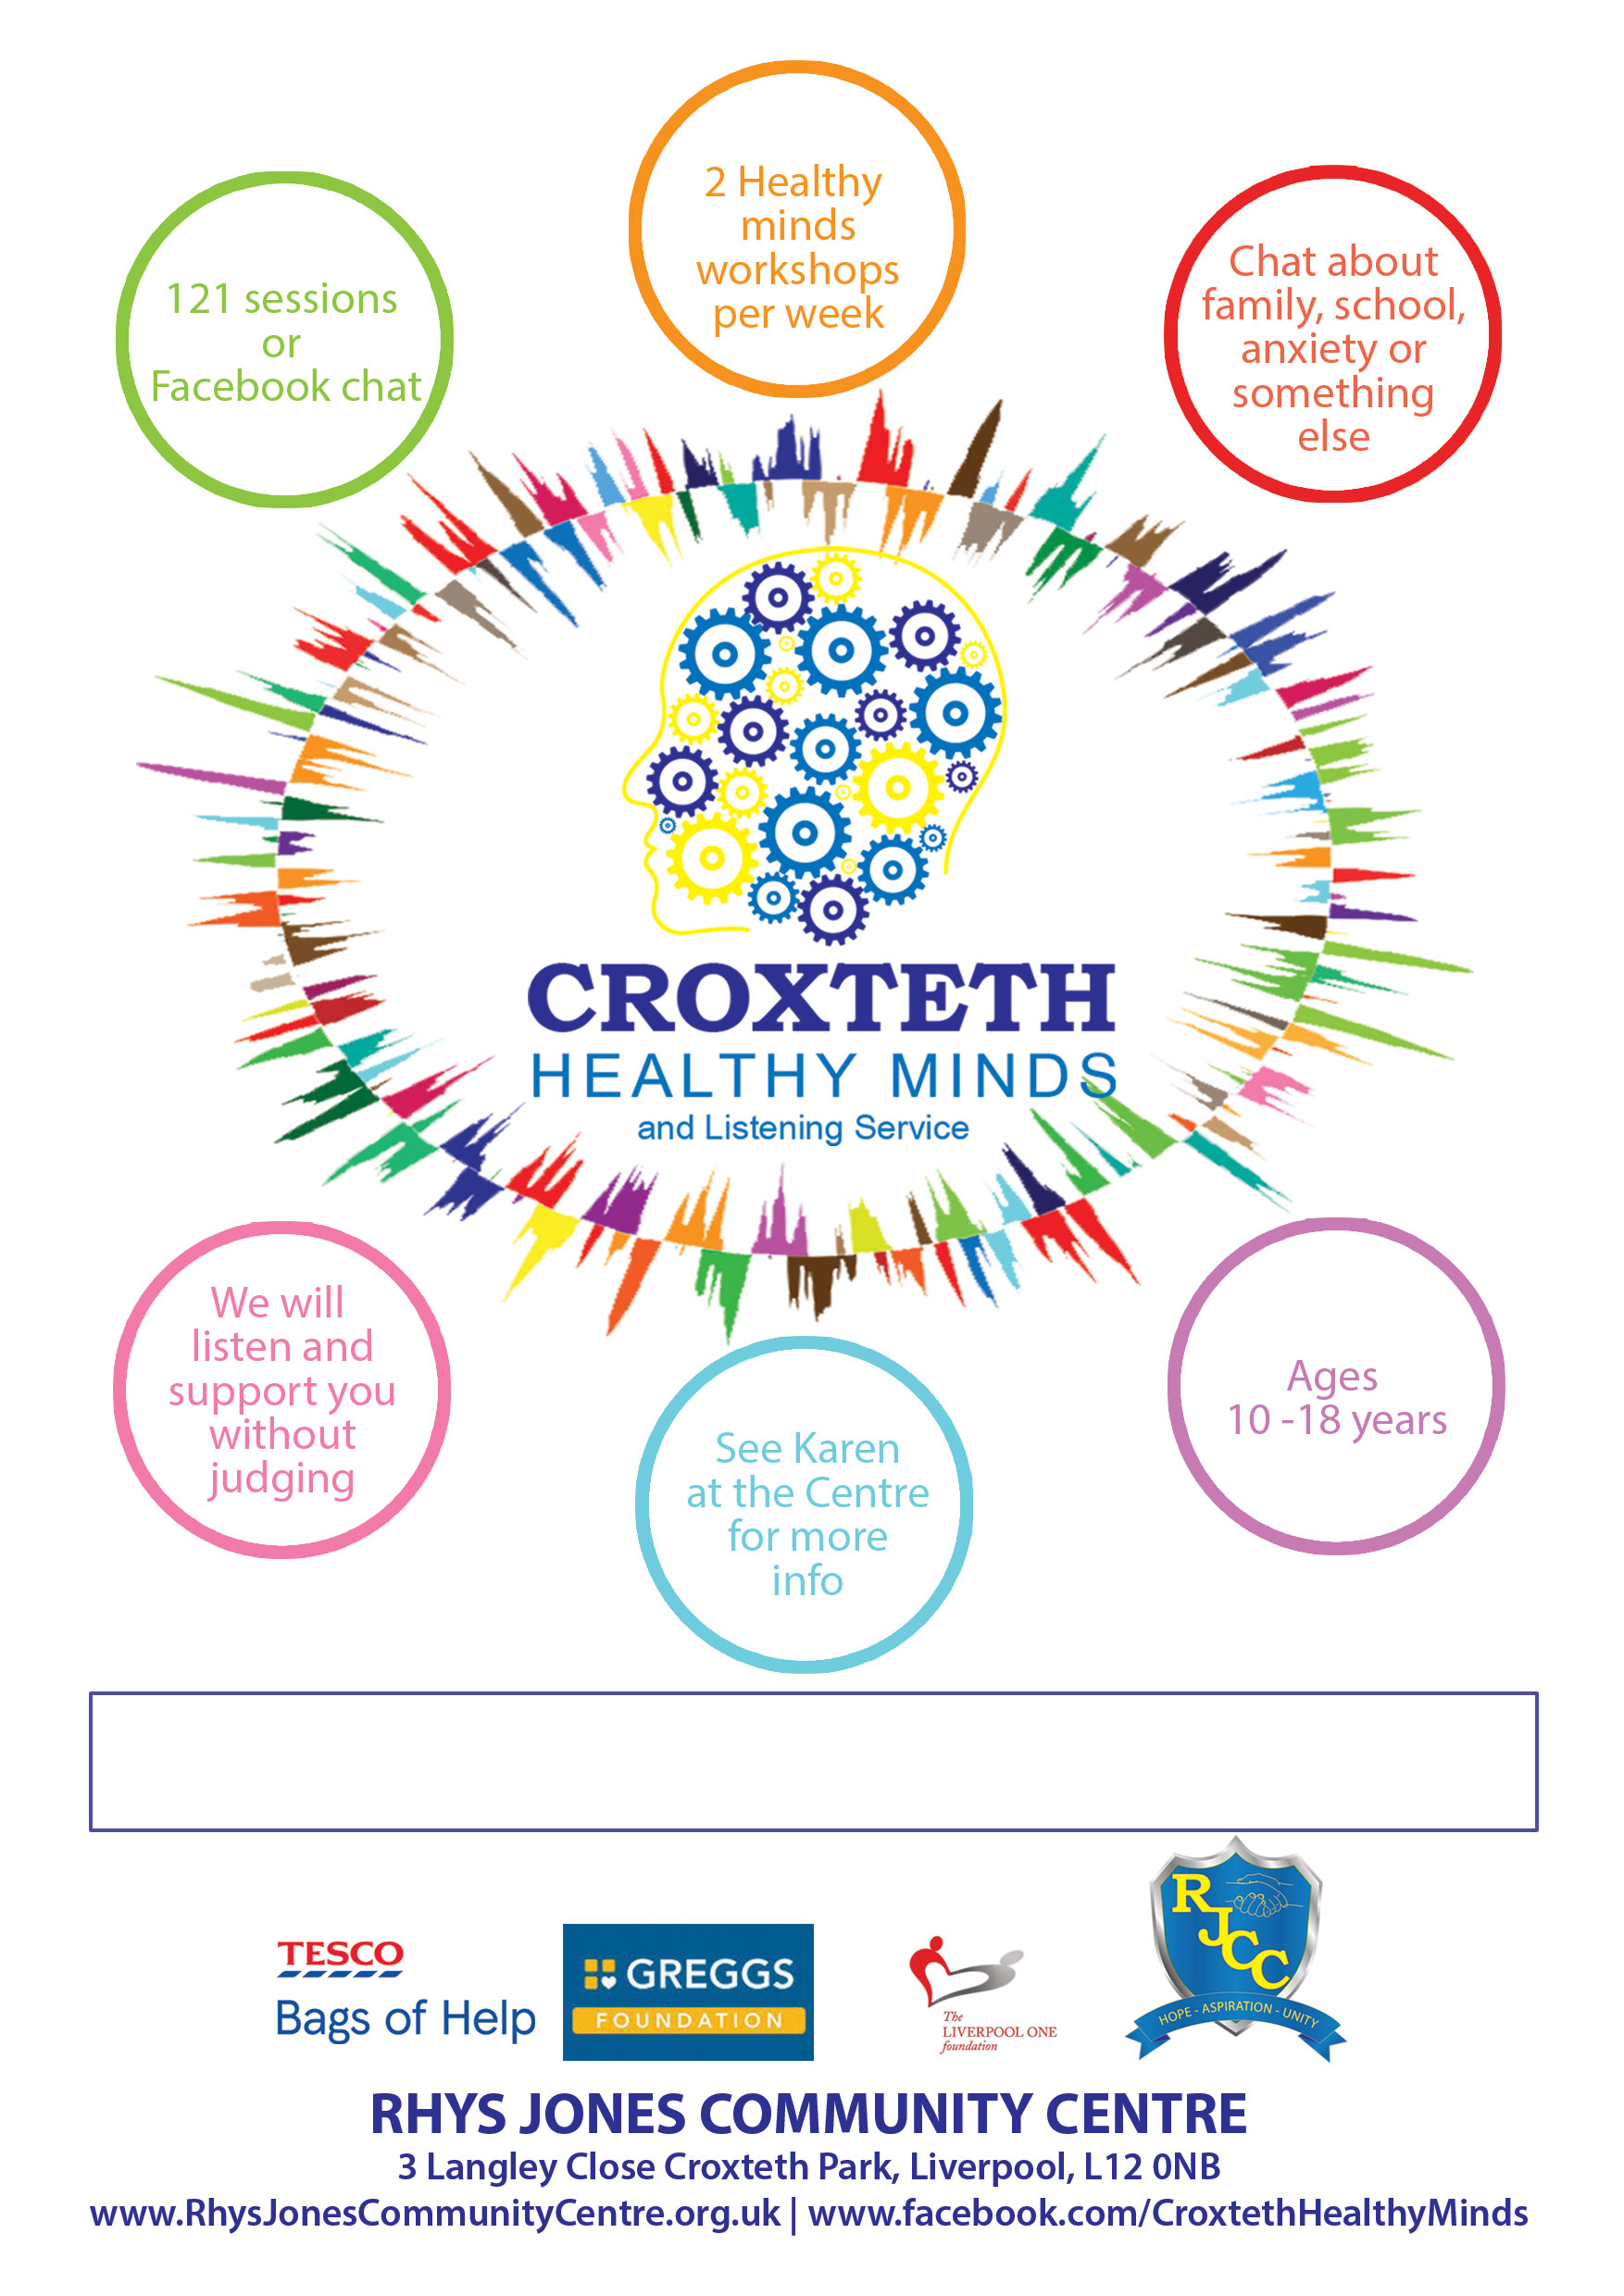 Croxteth Healthy Minds